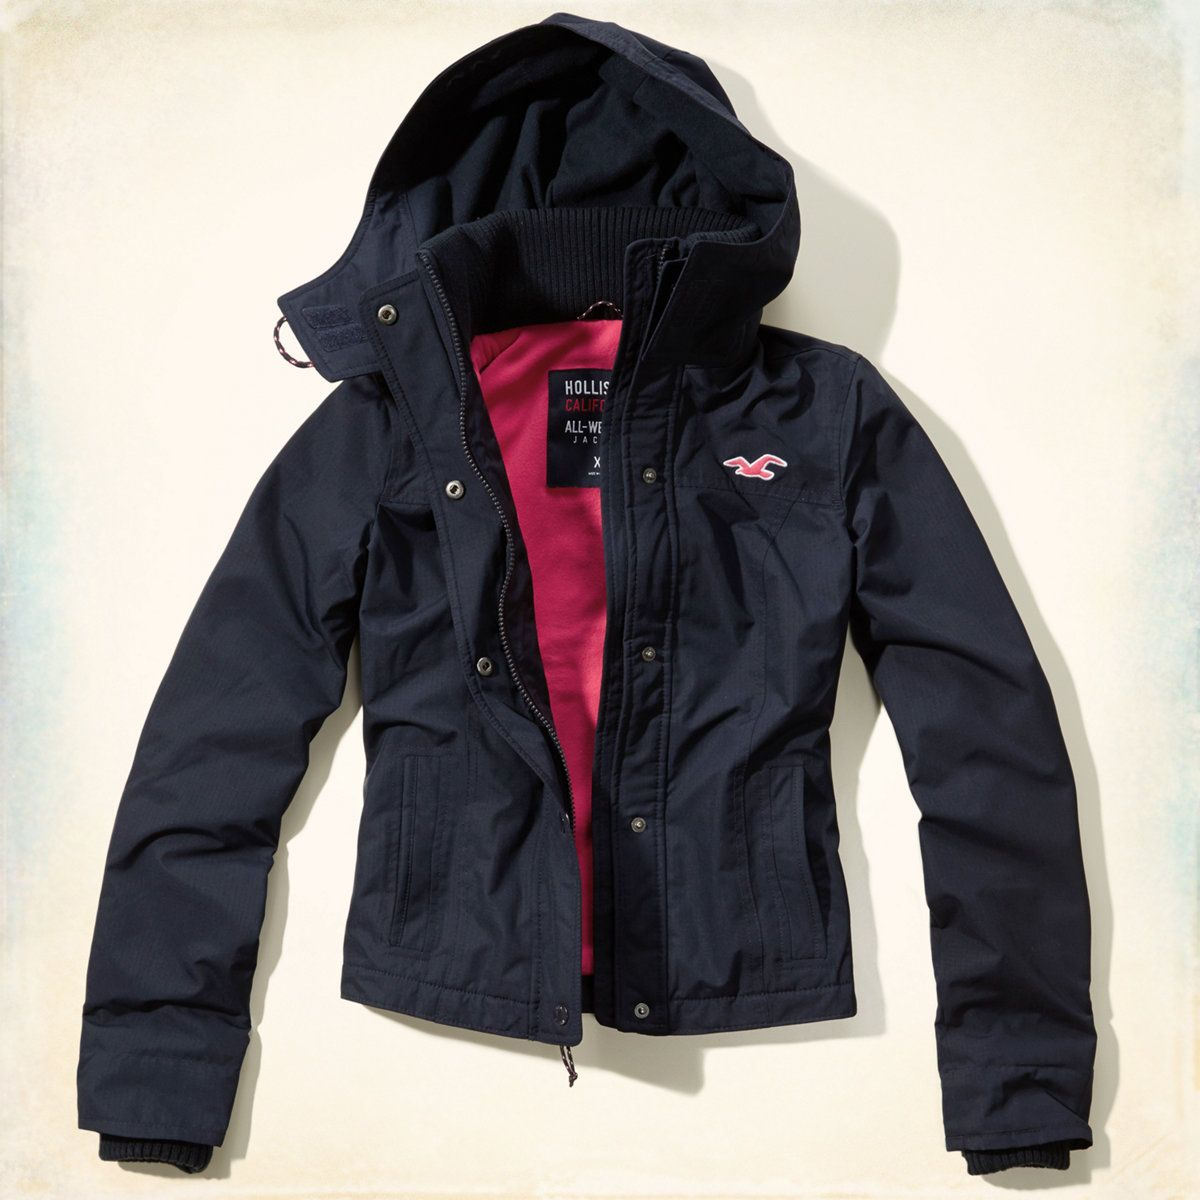 nouveau style 3fe9a 9ad67 Girls The Hollister All-Weather Jacket | Girls Jackets ...